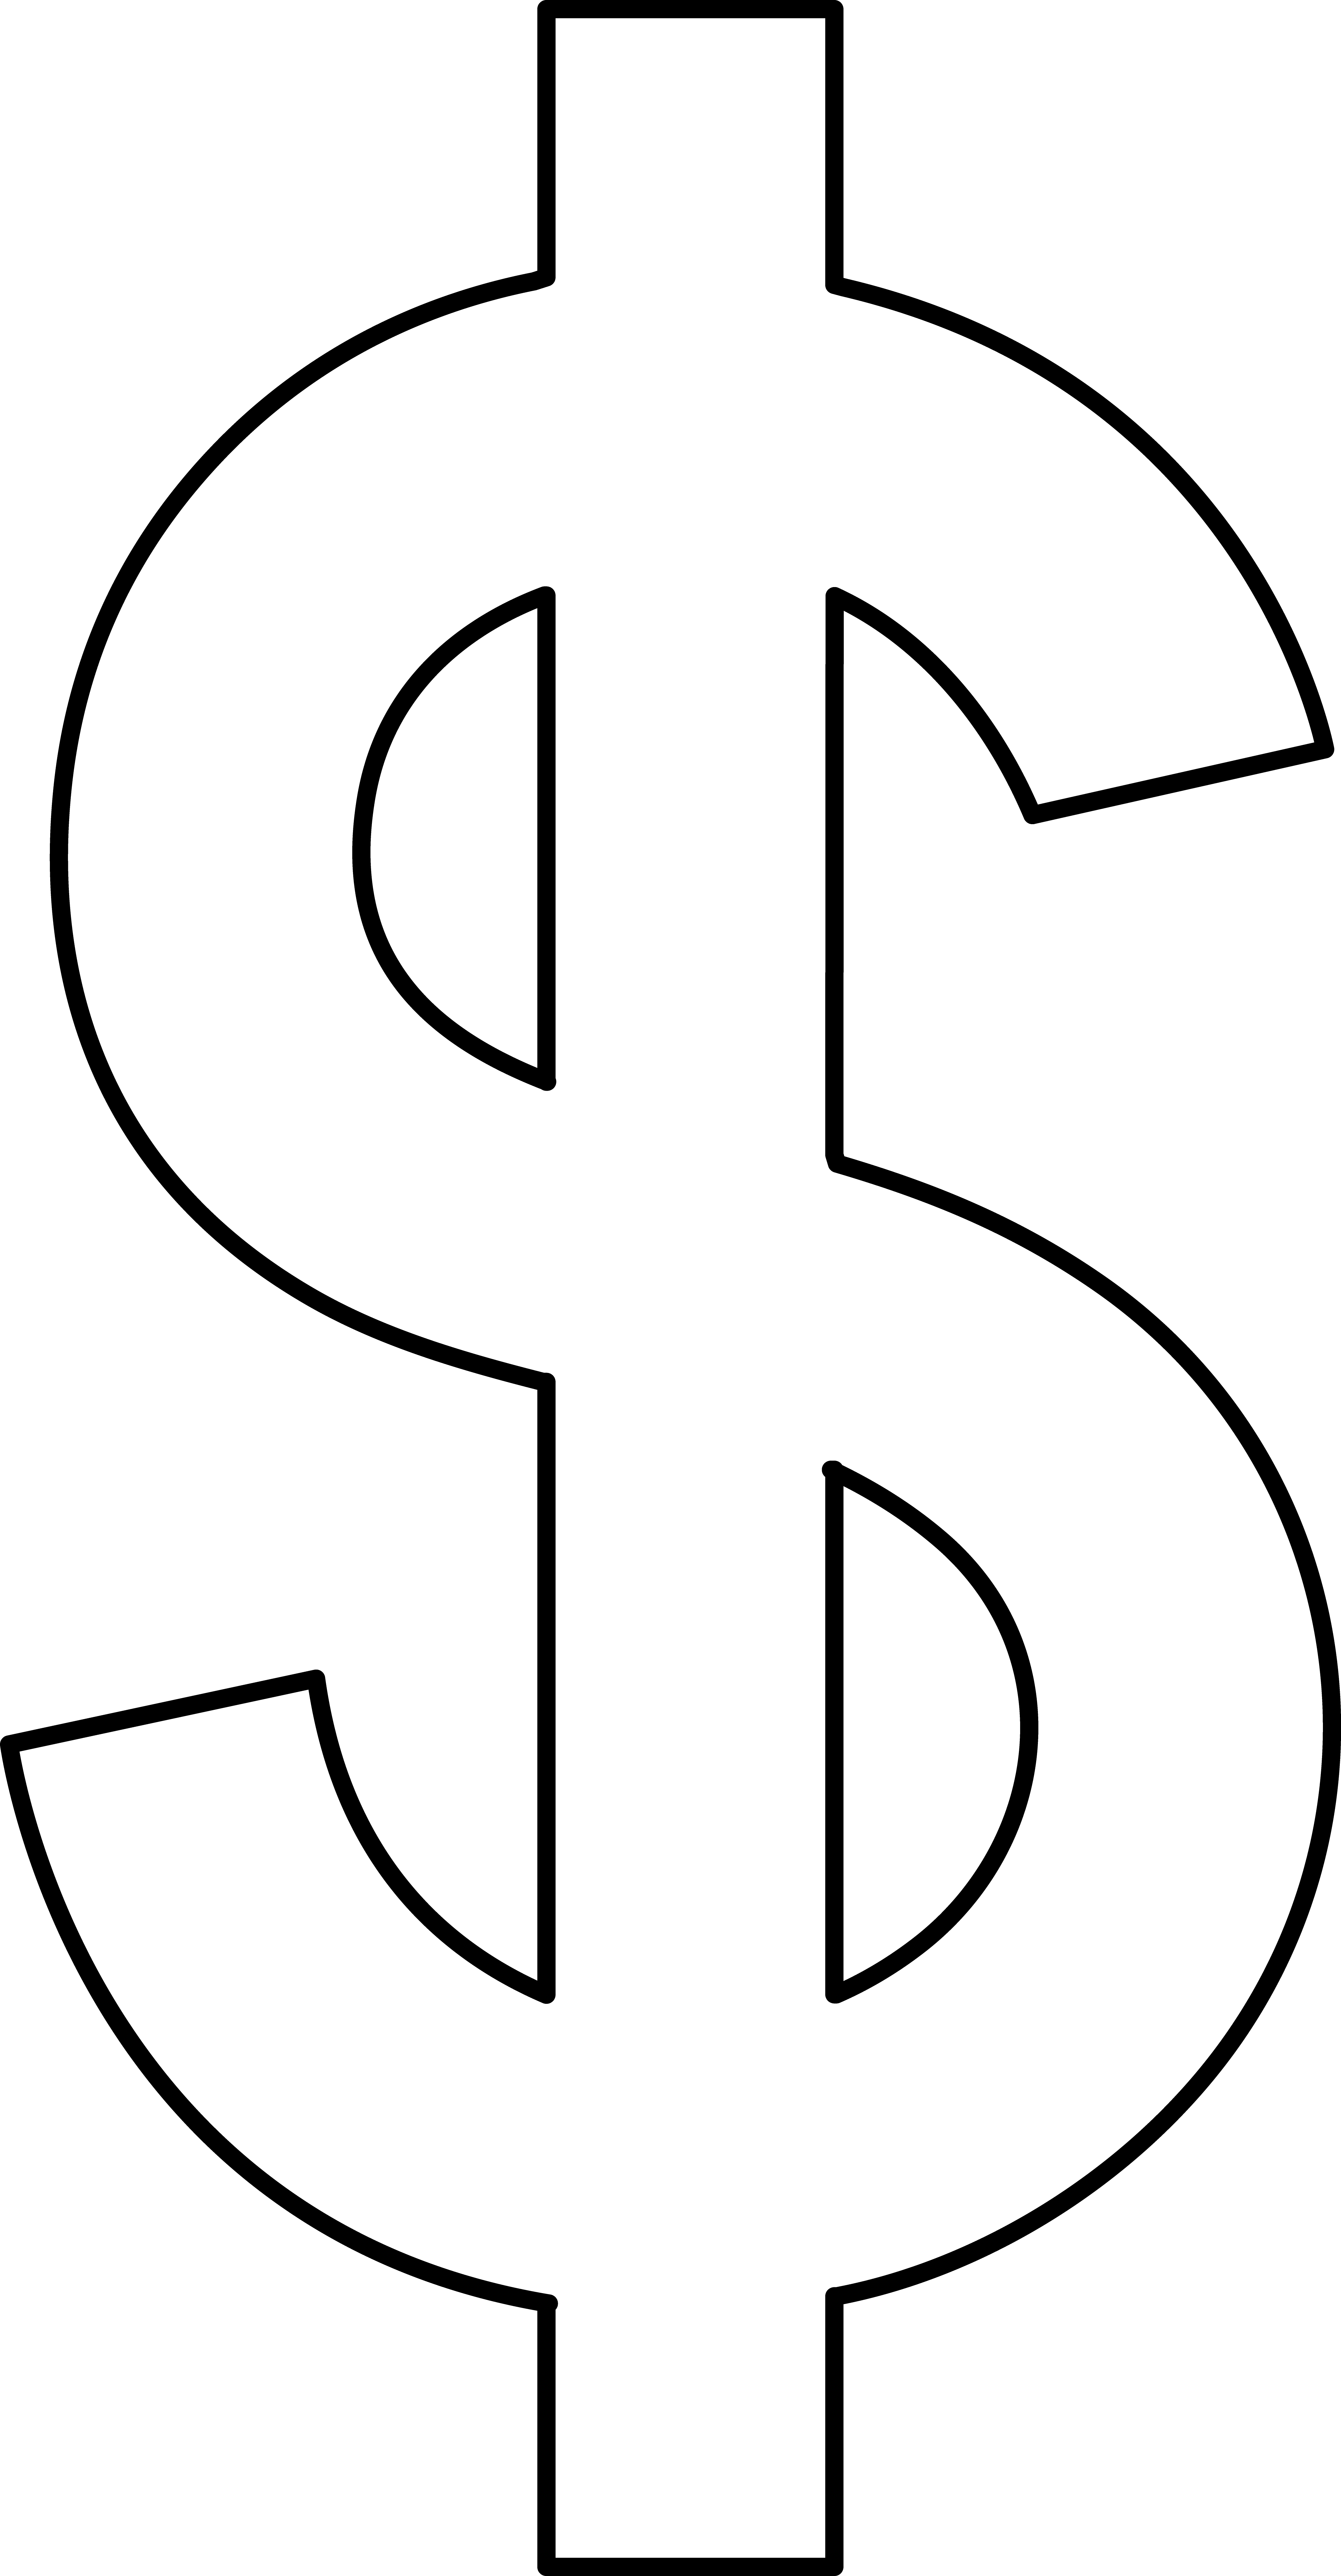 White dollar sign png. Collection of clipart